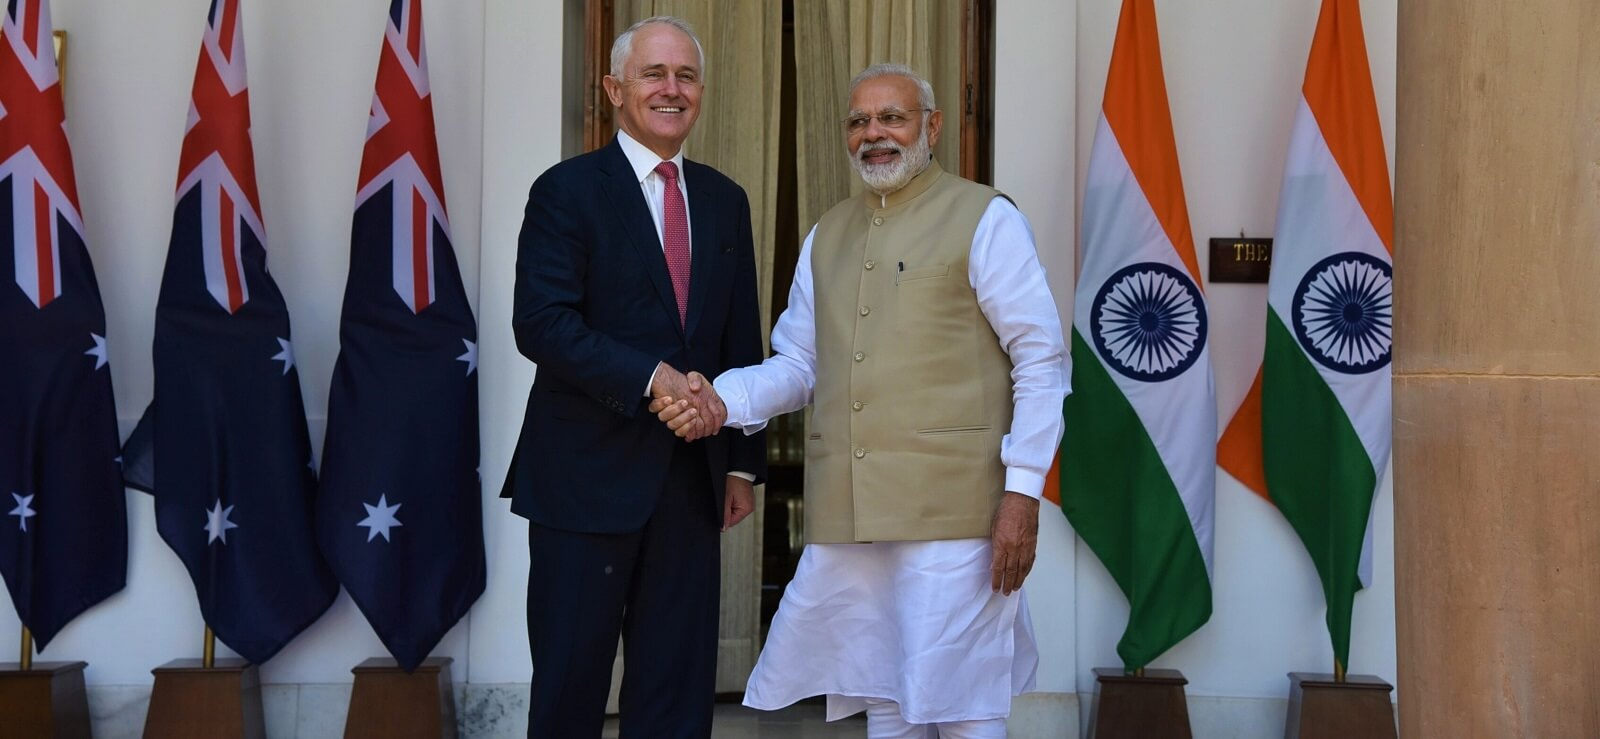 Australian Prime Minister Malcolm Turnbull meets with Indian Prime Minister Narendra Modi in New Delhi, 2017 (Photo: MEAphotogallery/Flickr)